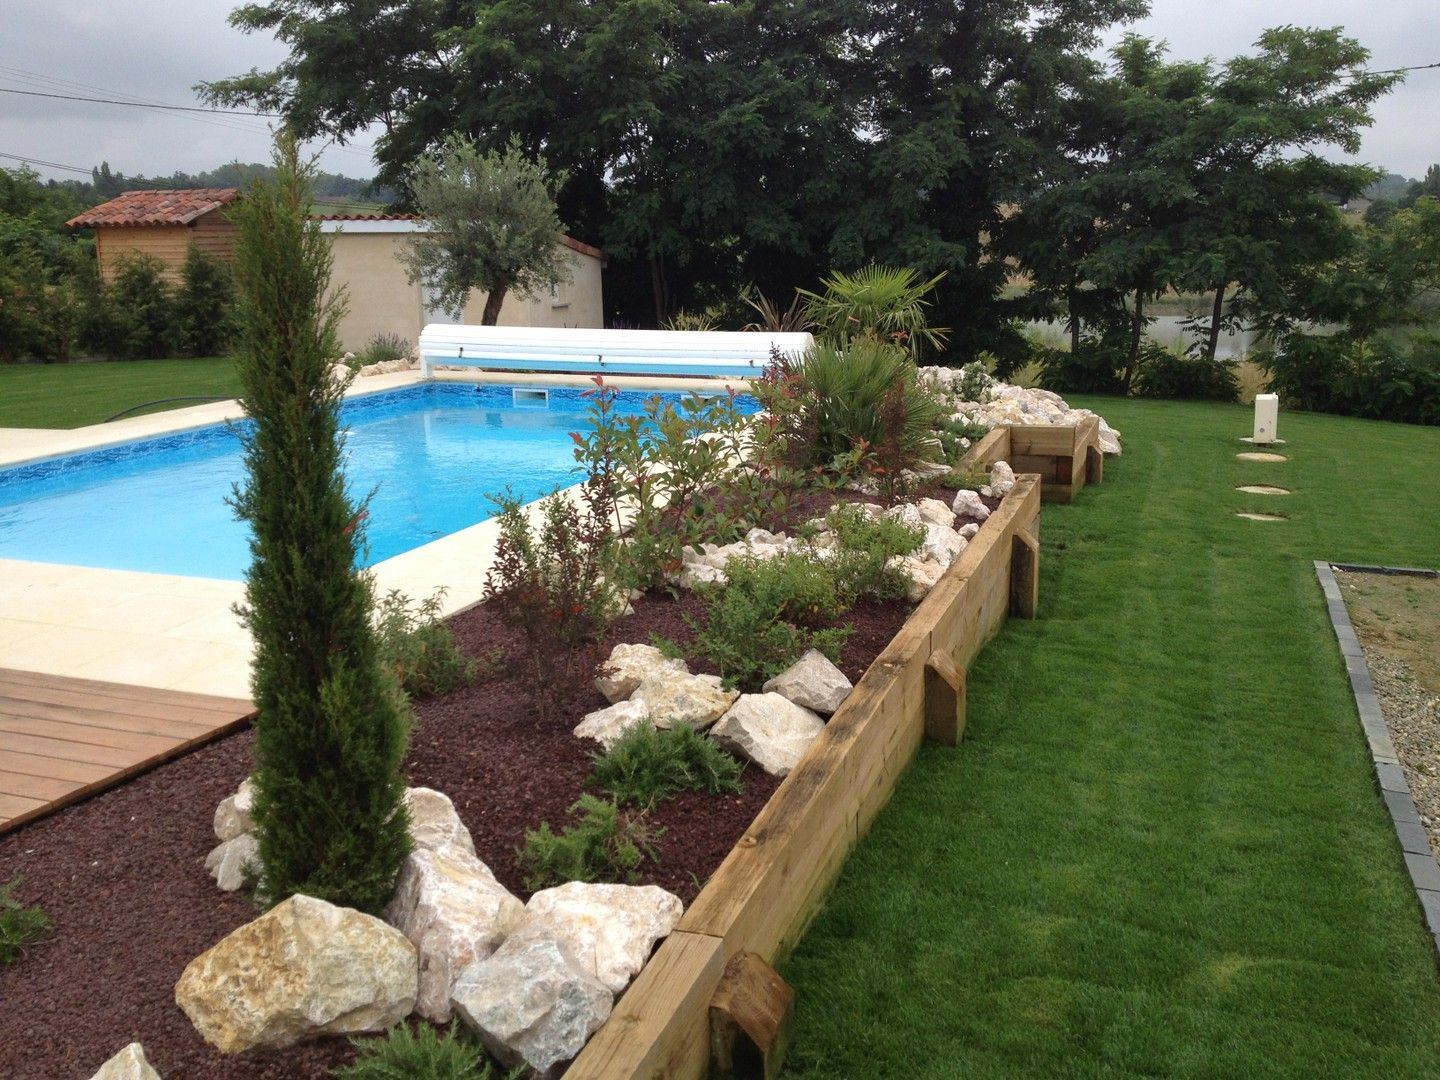 Amenagement Tour De Piscine Amenagement Jardin Terrasse Piscine Amenagement Jardin Piscine Amenagement Paysager